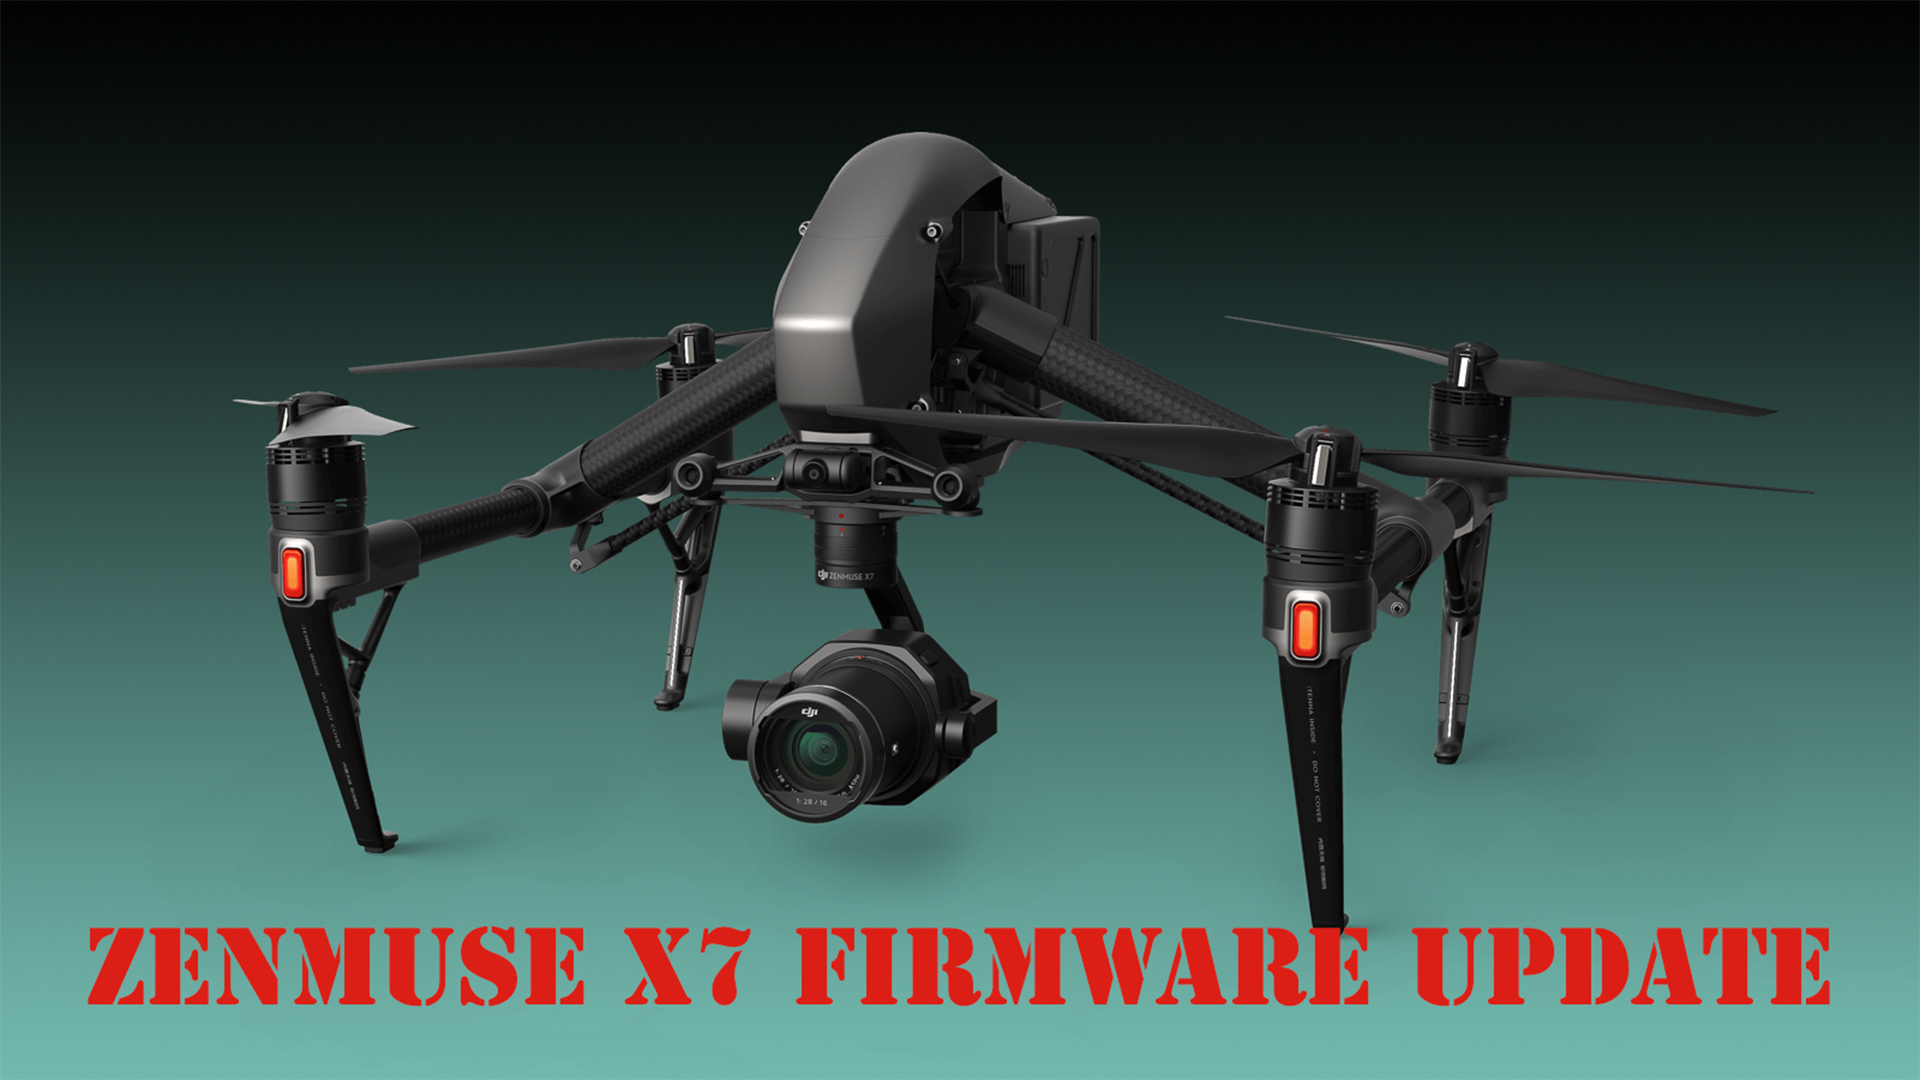 DJI Updates Zenmuse X7 Camera Supporting Apple ProRes RAW